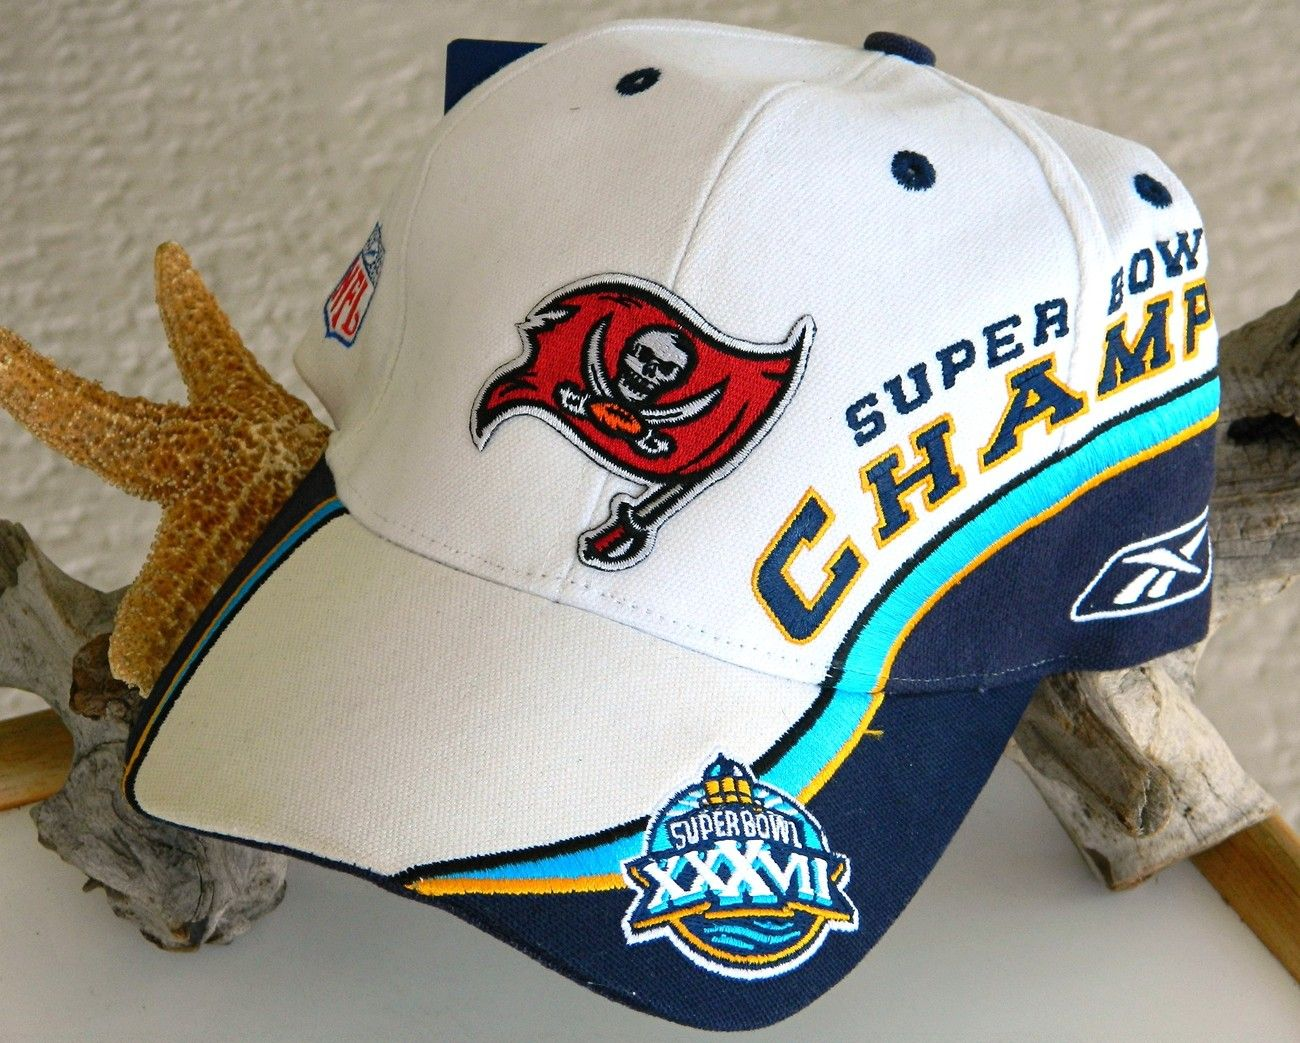 aed7462a Super Bowl XXXVII NFL Cap Tampa Bay Buccaneers Champ New Tag $37.95 ...